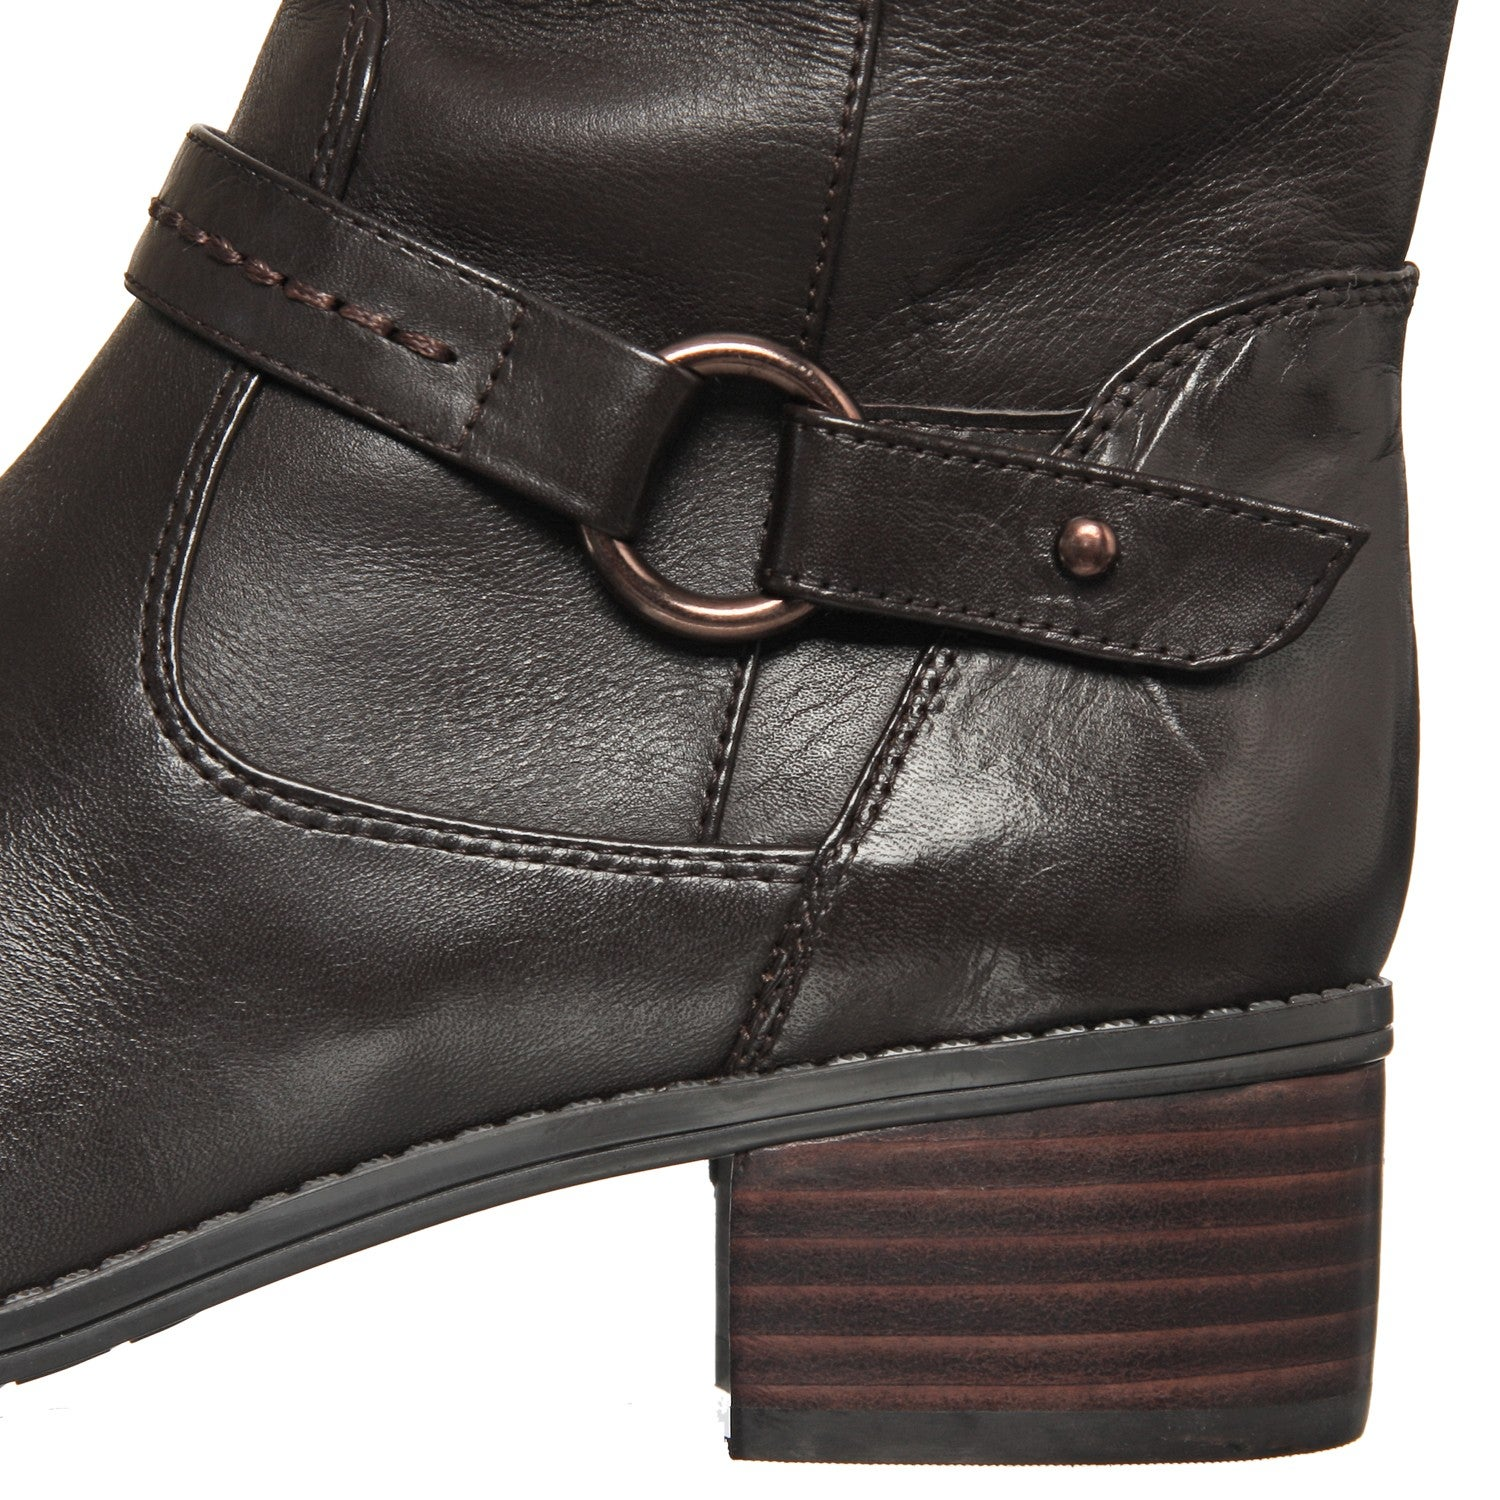 Shop Bandolino Women s  Cavanna  Tall Riding Boots - Free Shipping Today -  Overstock.com - 6220588 8c0c6f172b